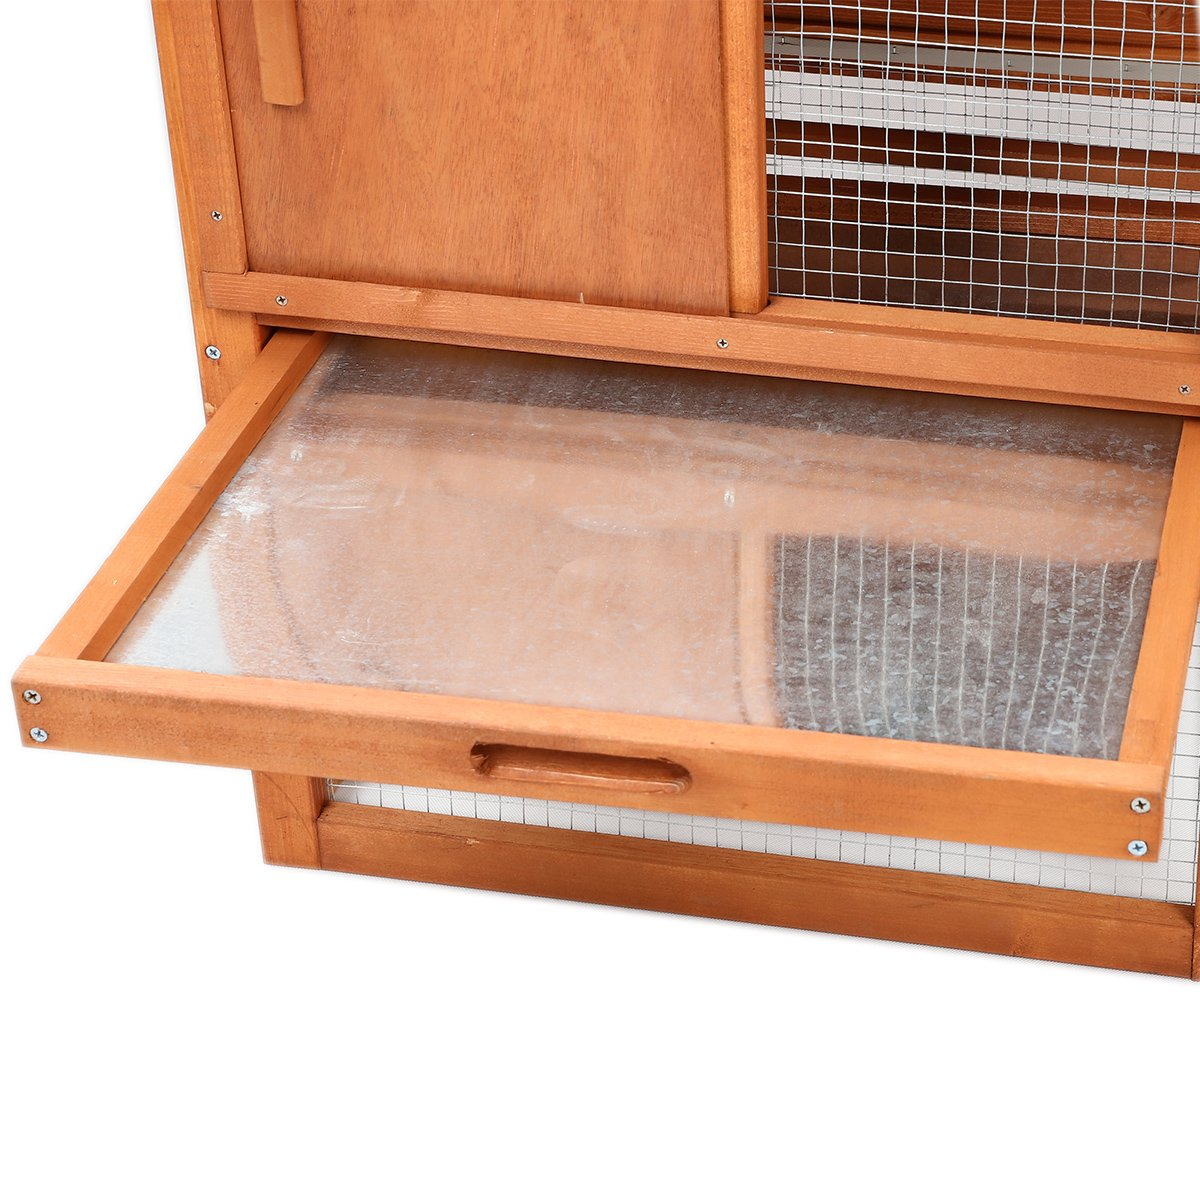 Magshion Wooden Chicken Coop Rabbit Bunny Hutch Pet Cage Wood Small Animal Poultry Cage Run Indoor by Magshion (Image #5)